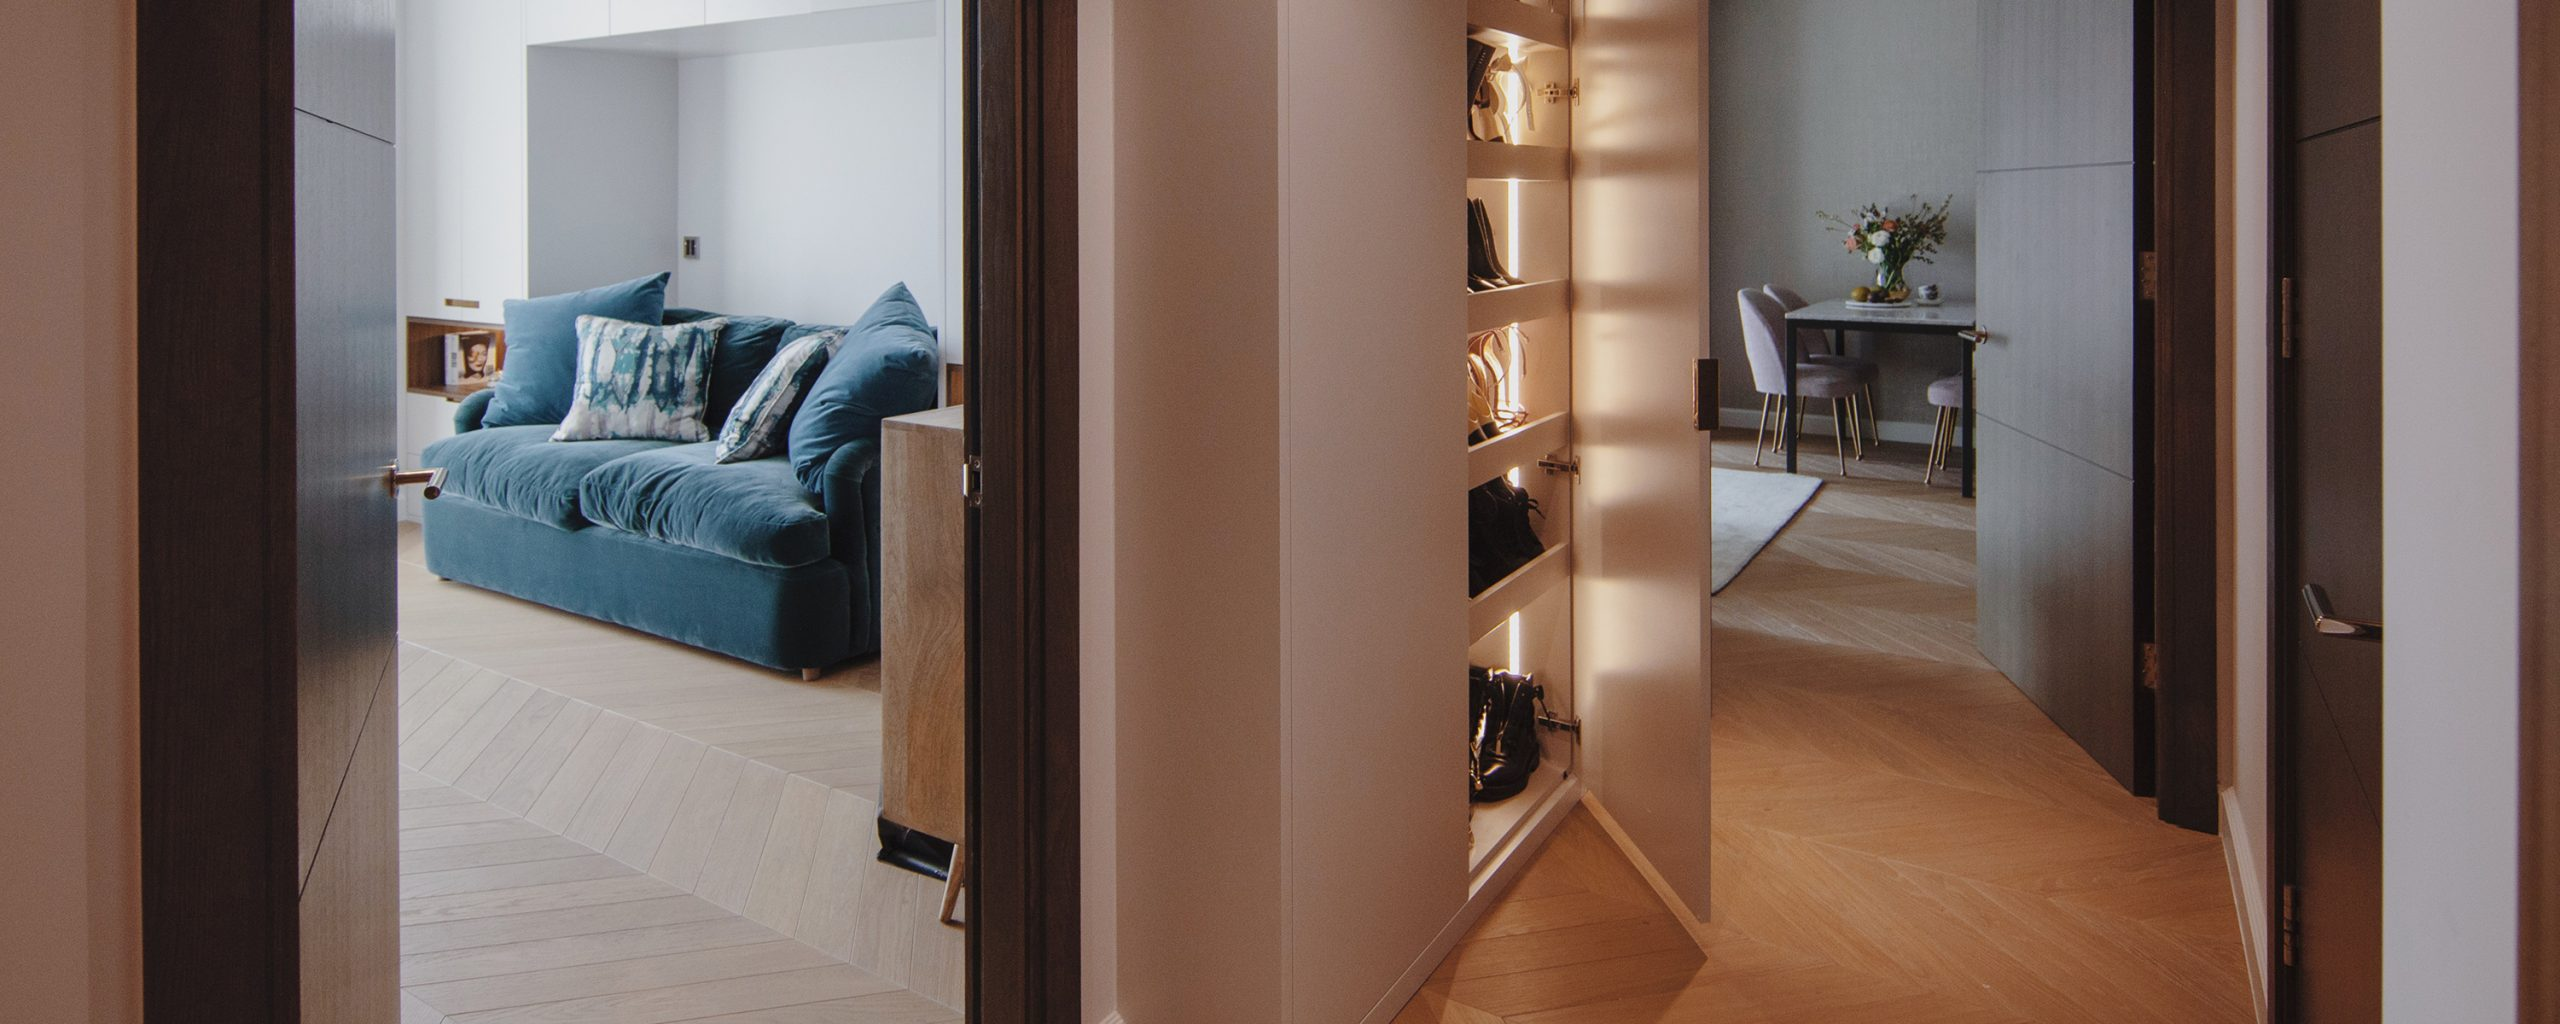 residential interior design in westminster, London- hallway with storage for shoes